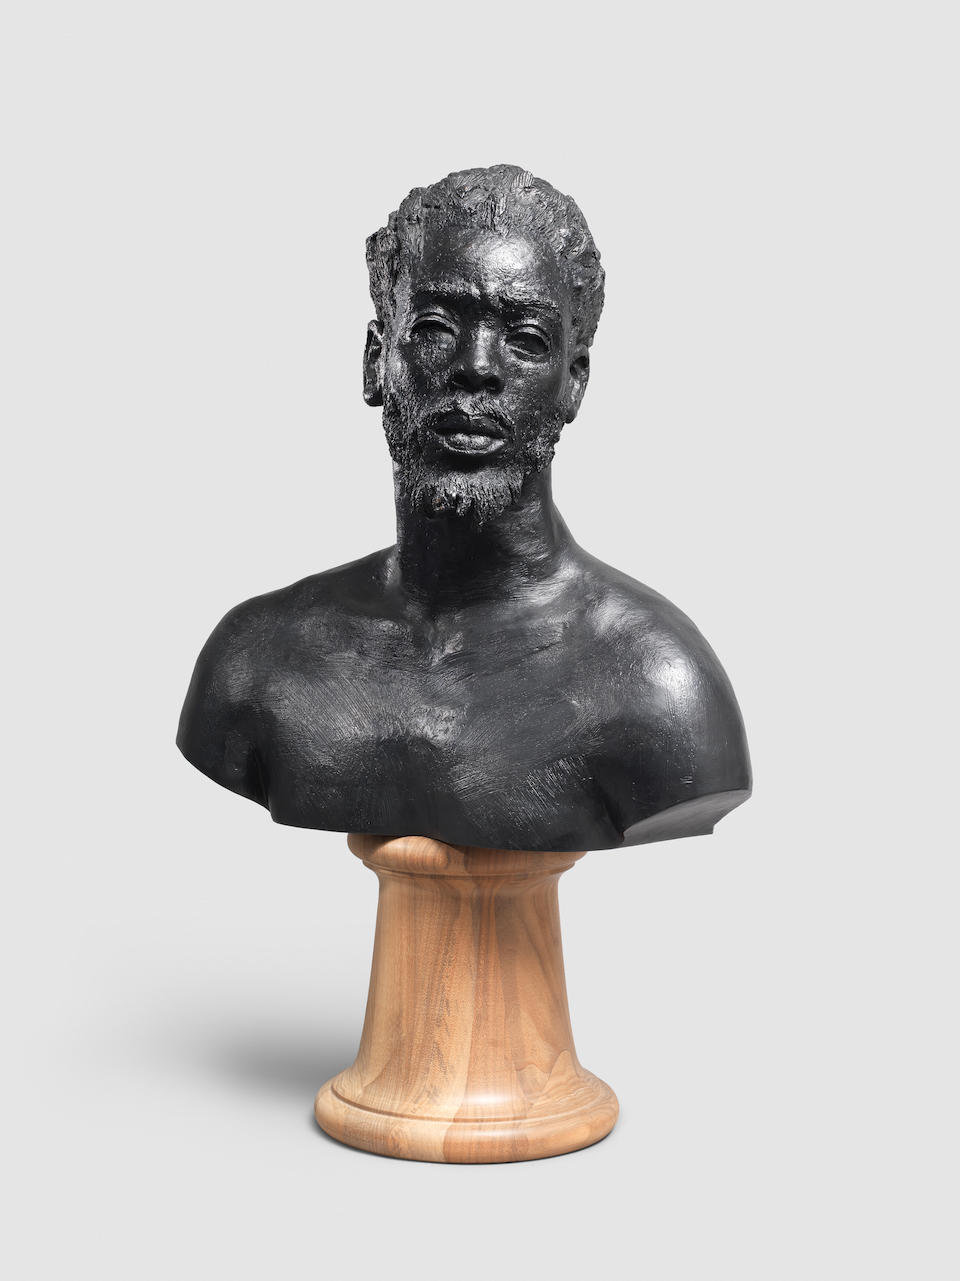 Mohau  Modisakeng (South African, born 1986) Untitled (Lefa bust), 2017 76.5 x 48 x 25cm (30 1/8 x 18 7/8 x 9 13/16in). including base.